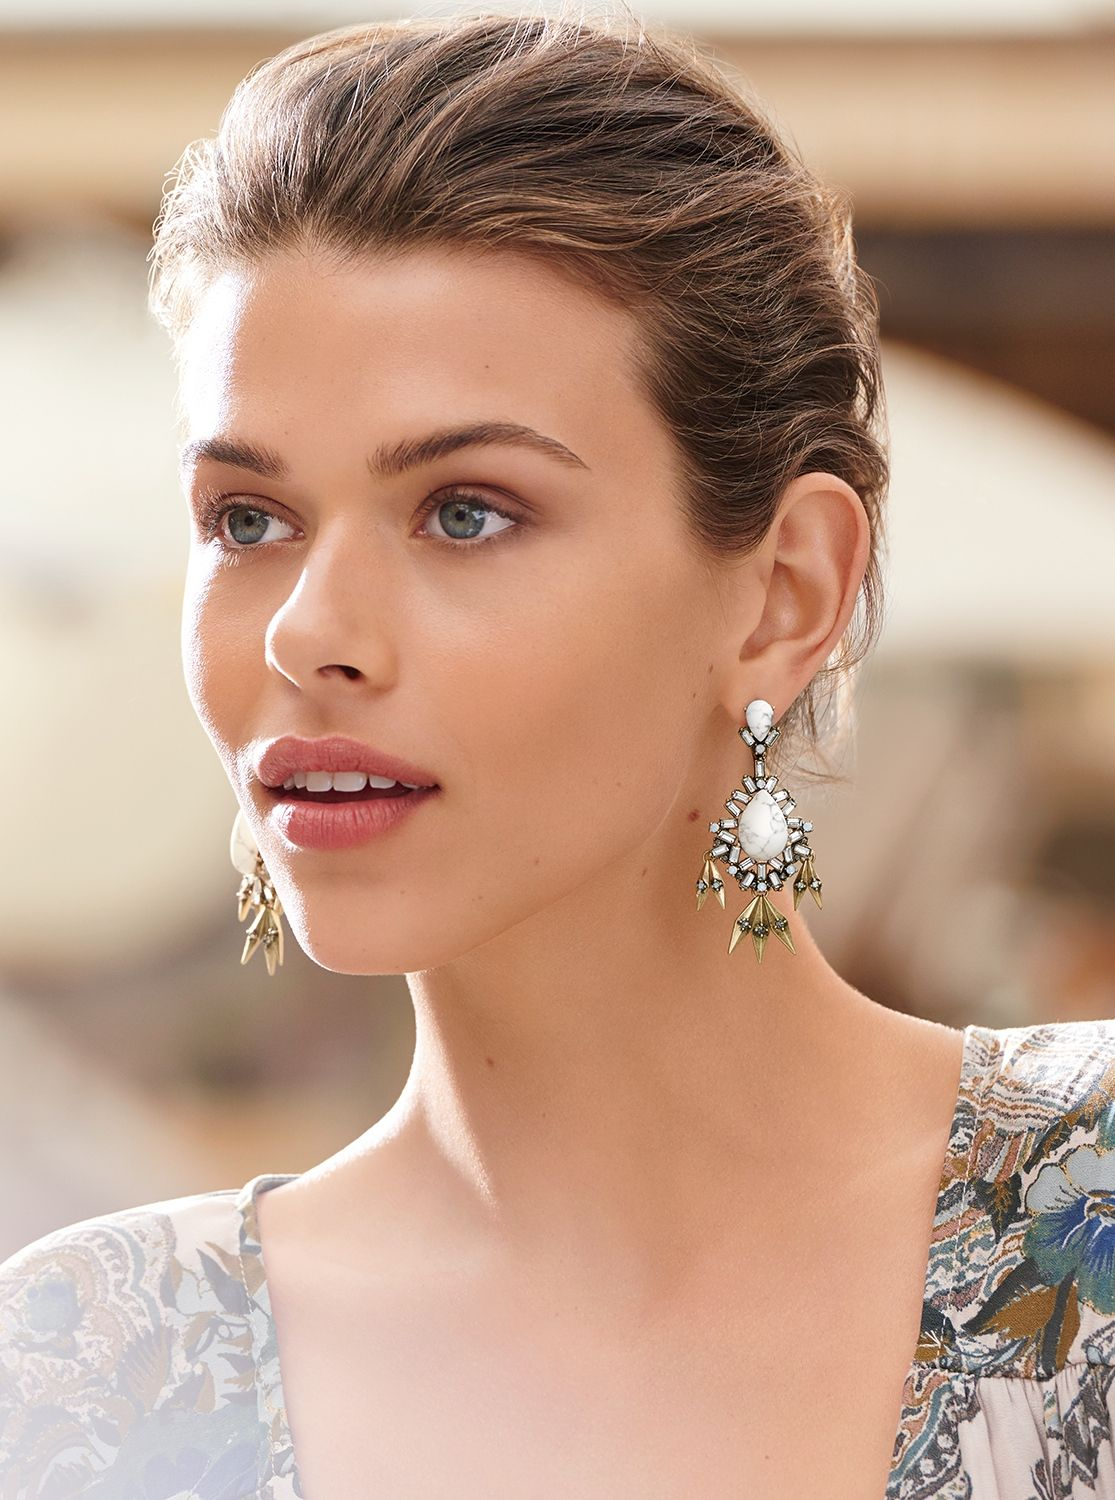 This season's #1 convertible: our Aventine Convertible Statement Earrings. Hypo-allergenic and fashionable for spring! http://bit.ly/1WimvLX